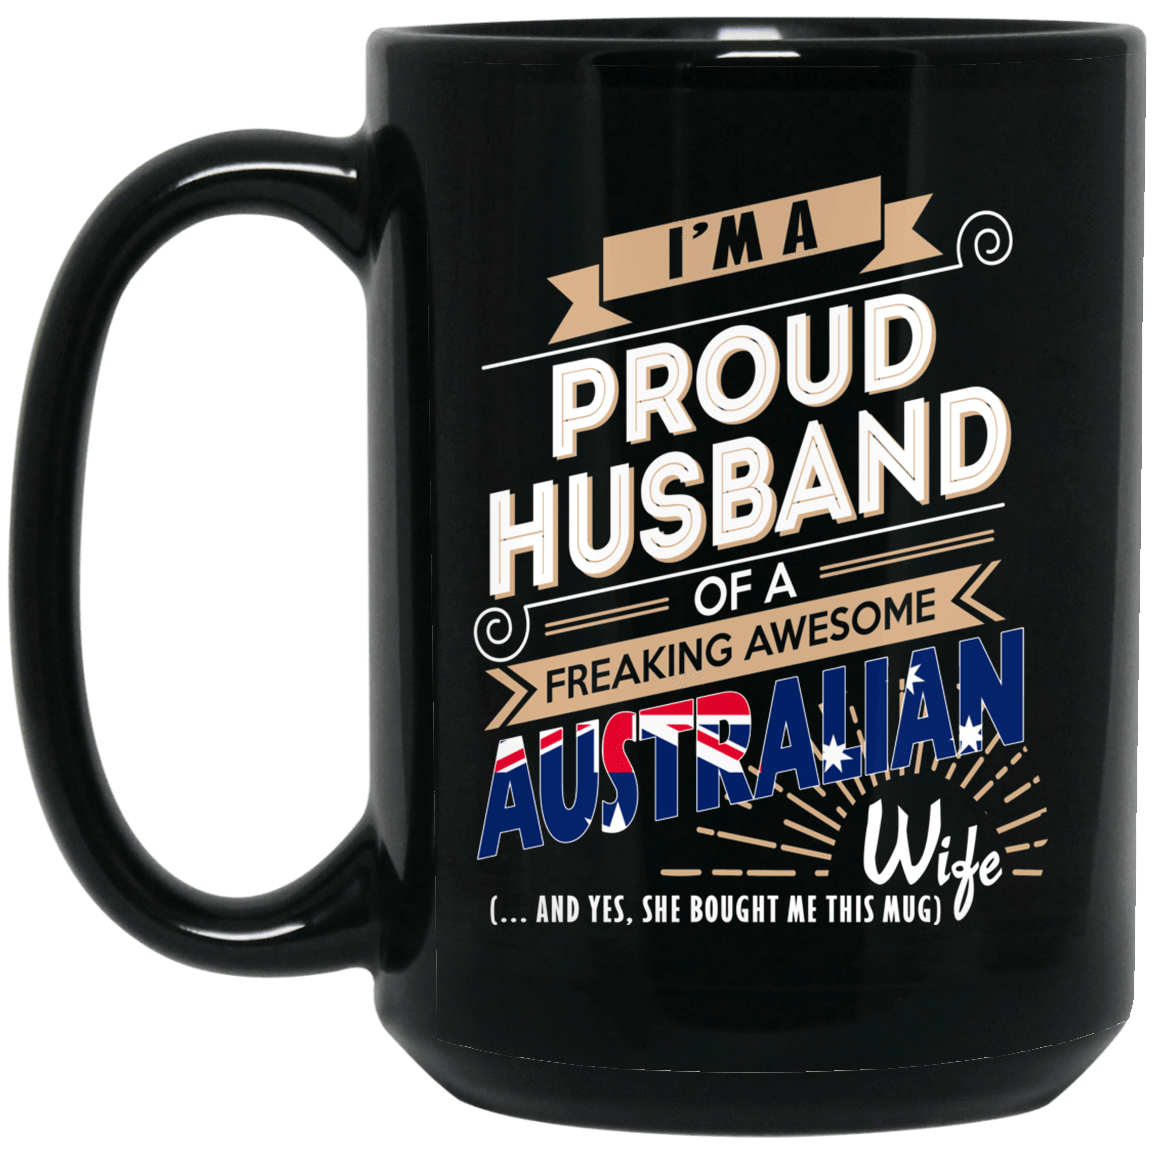 Proud Husband Of A Freaking Awesome Australian Wife Mug 1066-10182-72136610-49311 - Tee Ript